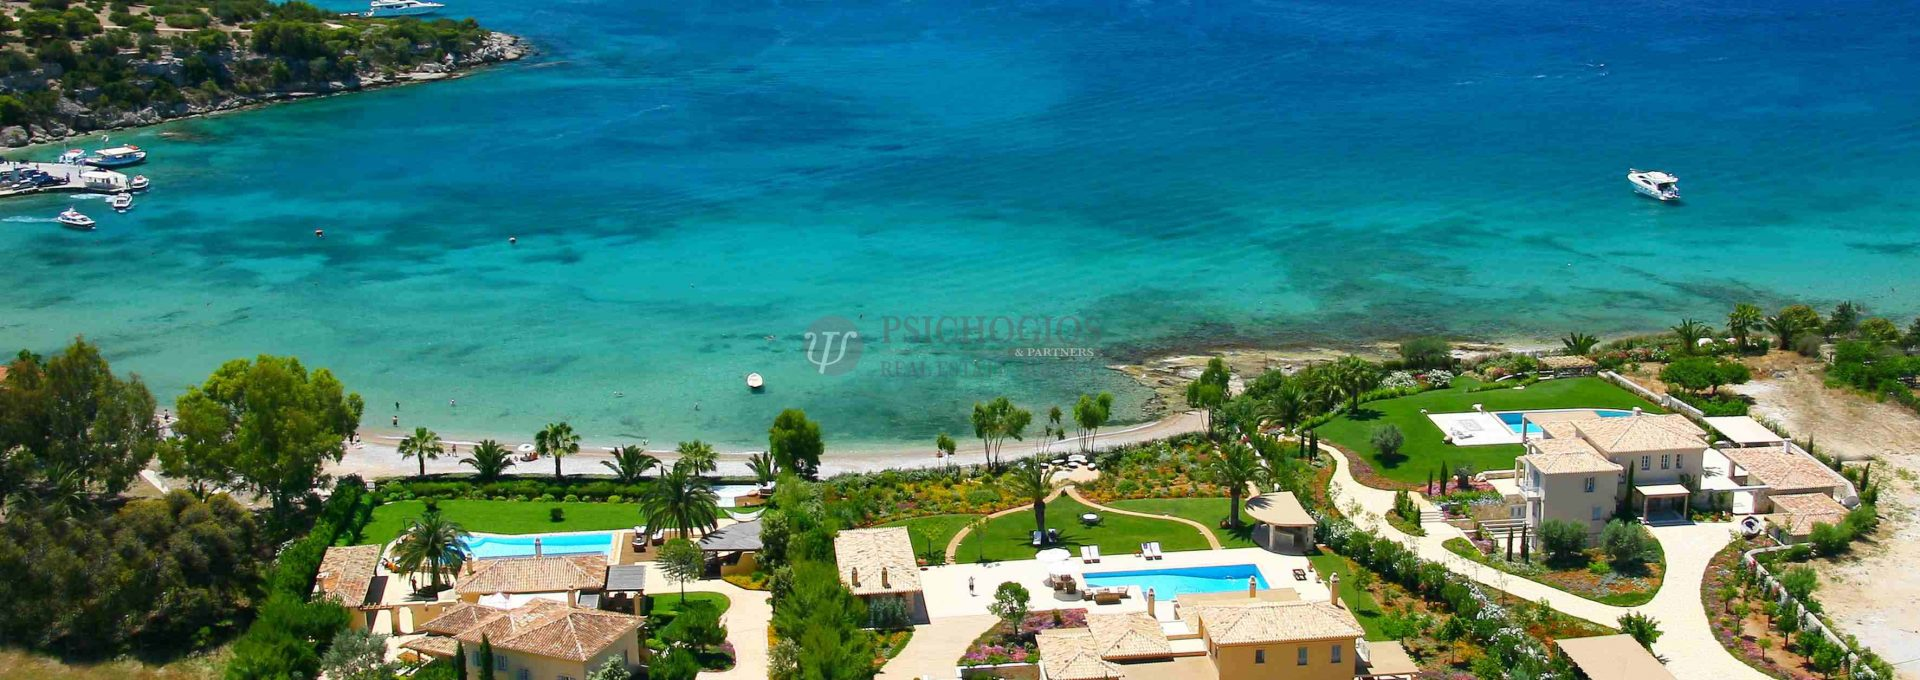 for_rent_villa_540_square_meters_swimming_pool_on_the_beach_Costa_Greece (1)